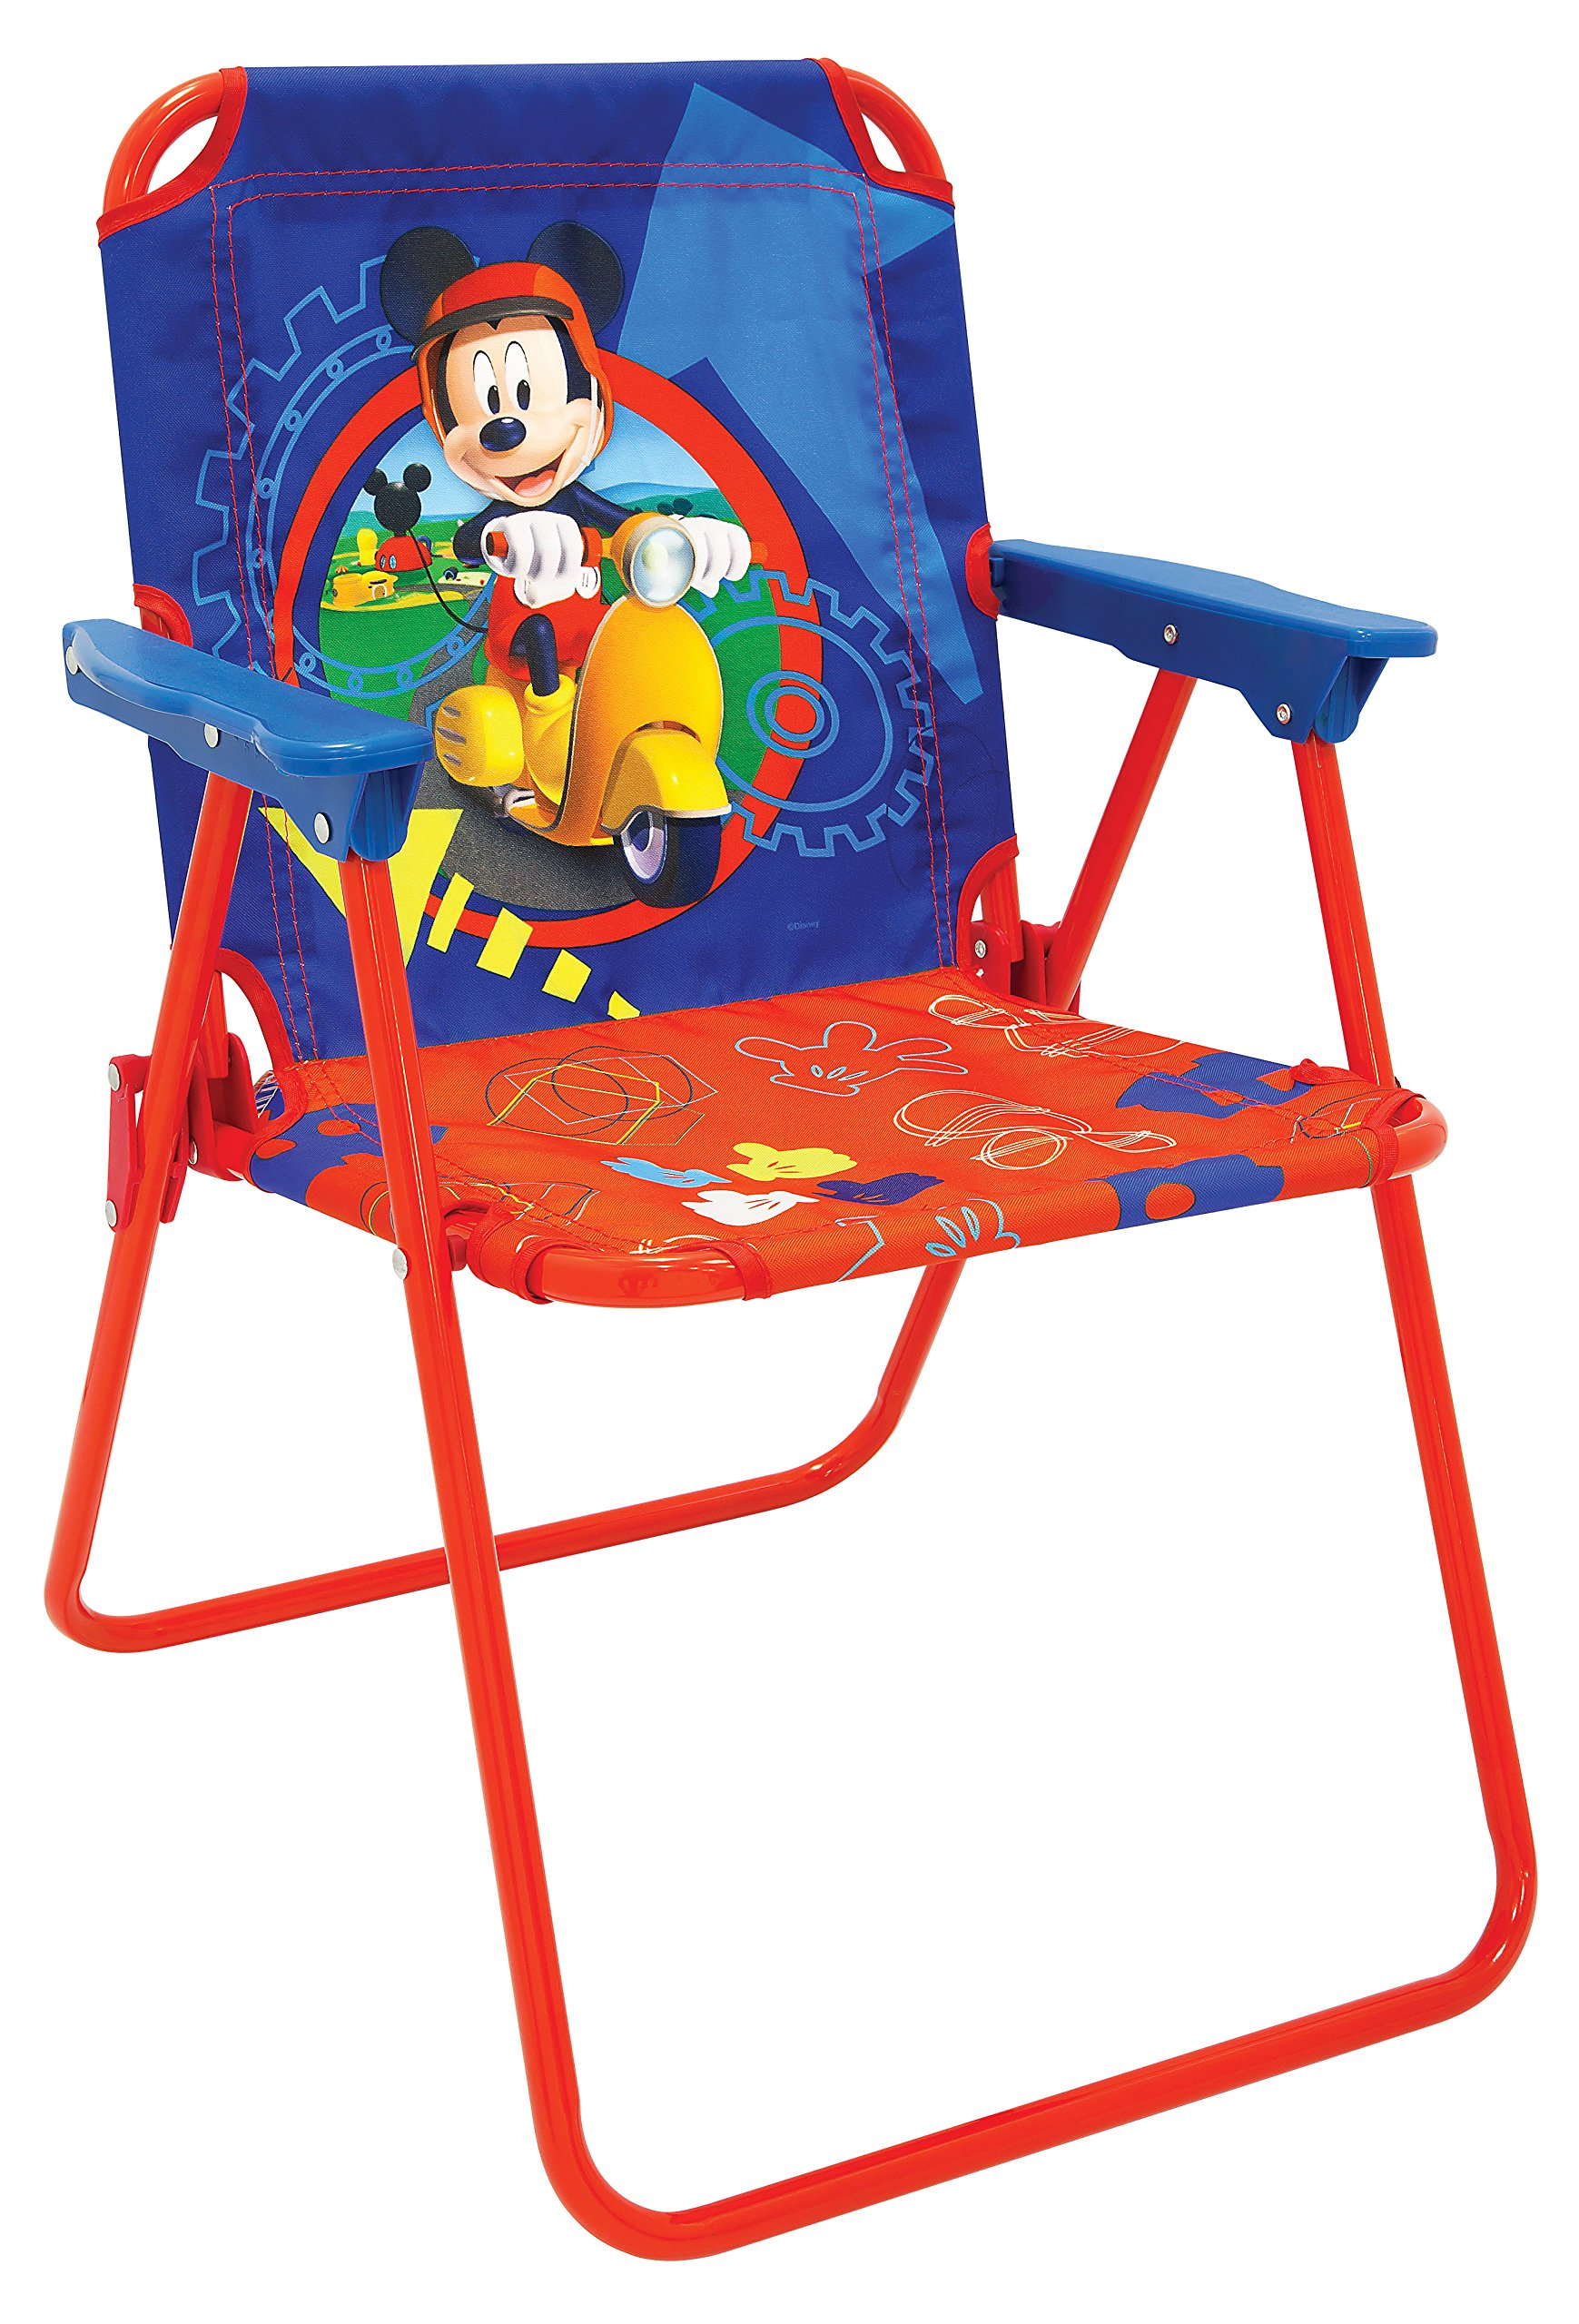 Mickey Mouse Clubhouse Capers Patio Chair